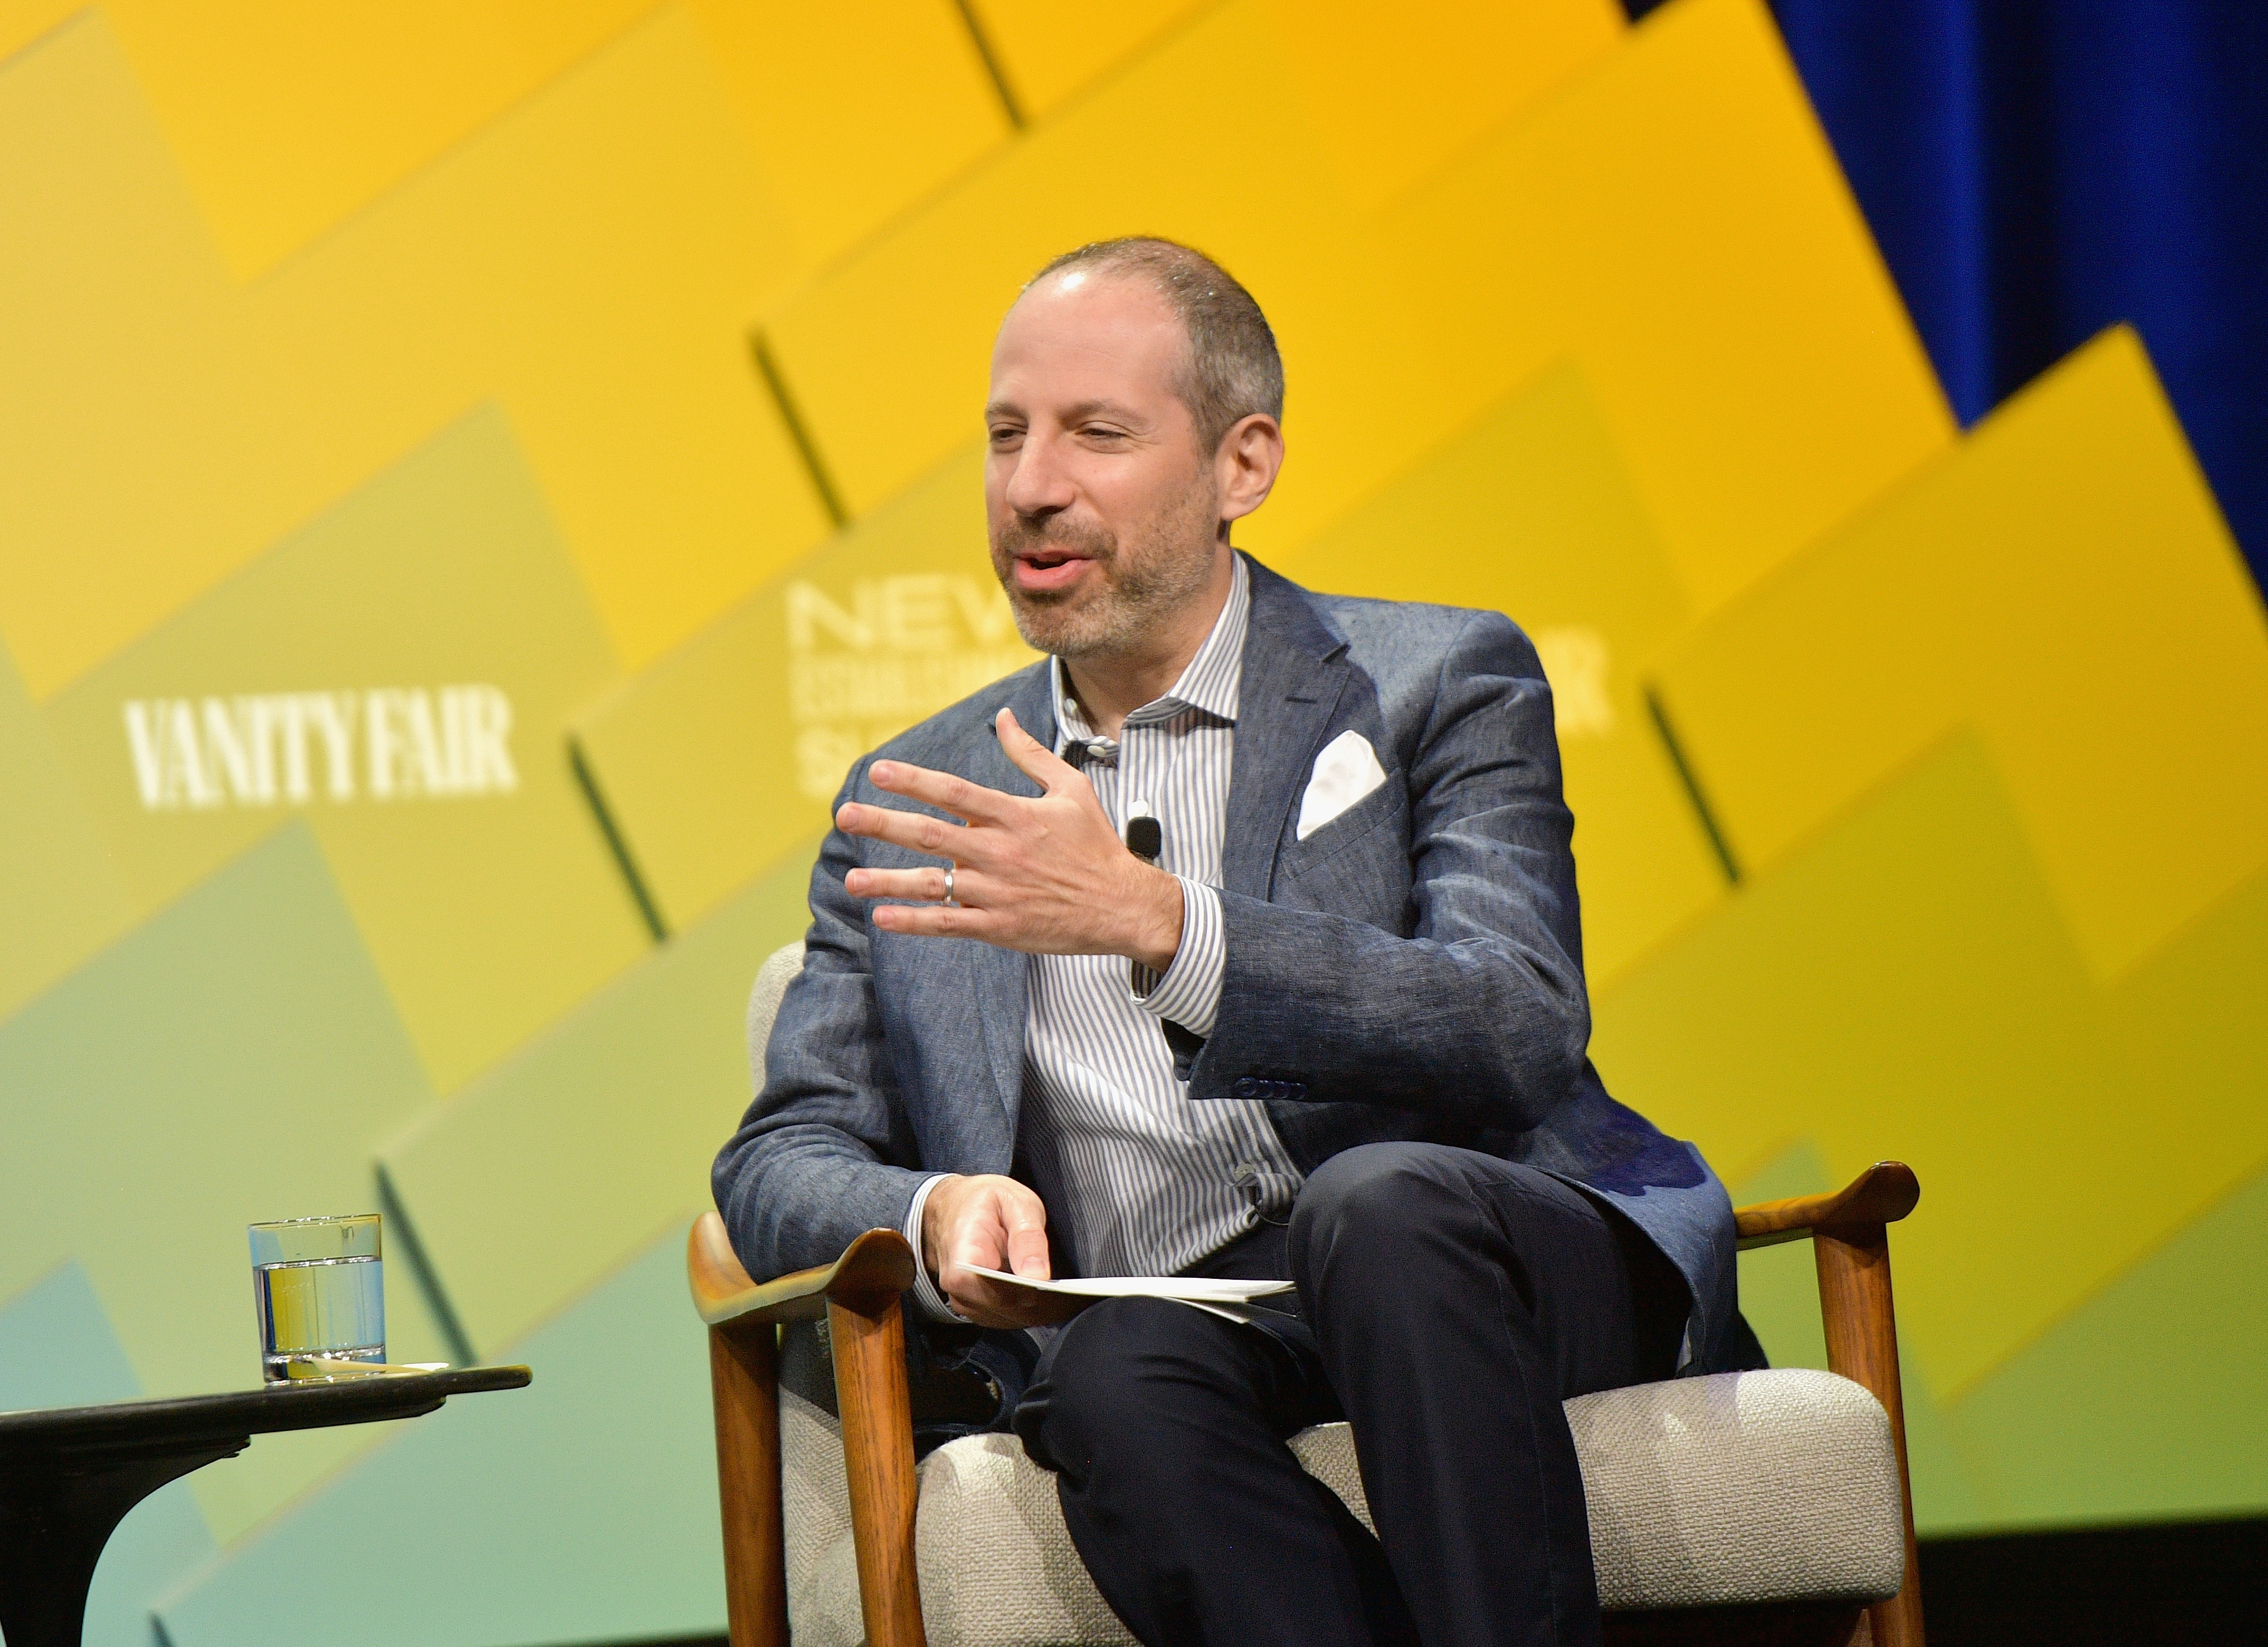 President of NBC News and screenwriter of Oscar-nominated film Jackie, Noah Oppenheim speaks onstage at Day 2 of the Vanity Fair New Establishment Summit 2018 at The Wallis Annenberg Center for the Performing Arts on October 10, 2018 in Beverly Hills, California. (Photo by Matt Winkelmeyer/Getty Images)